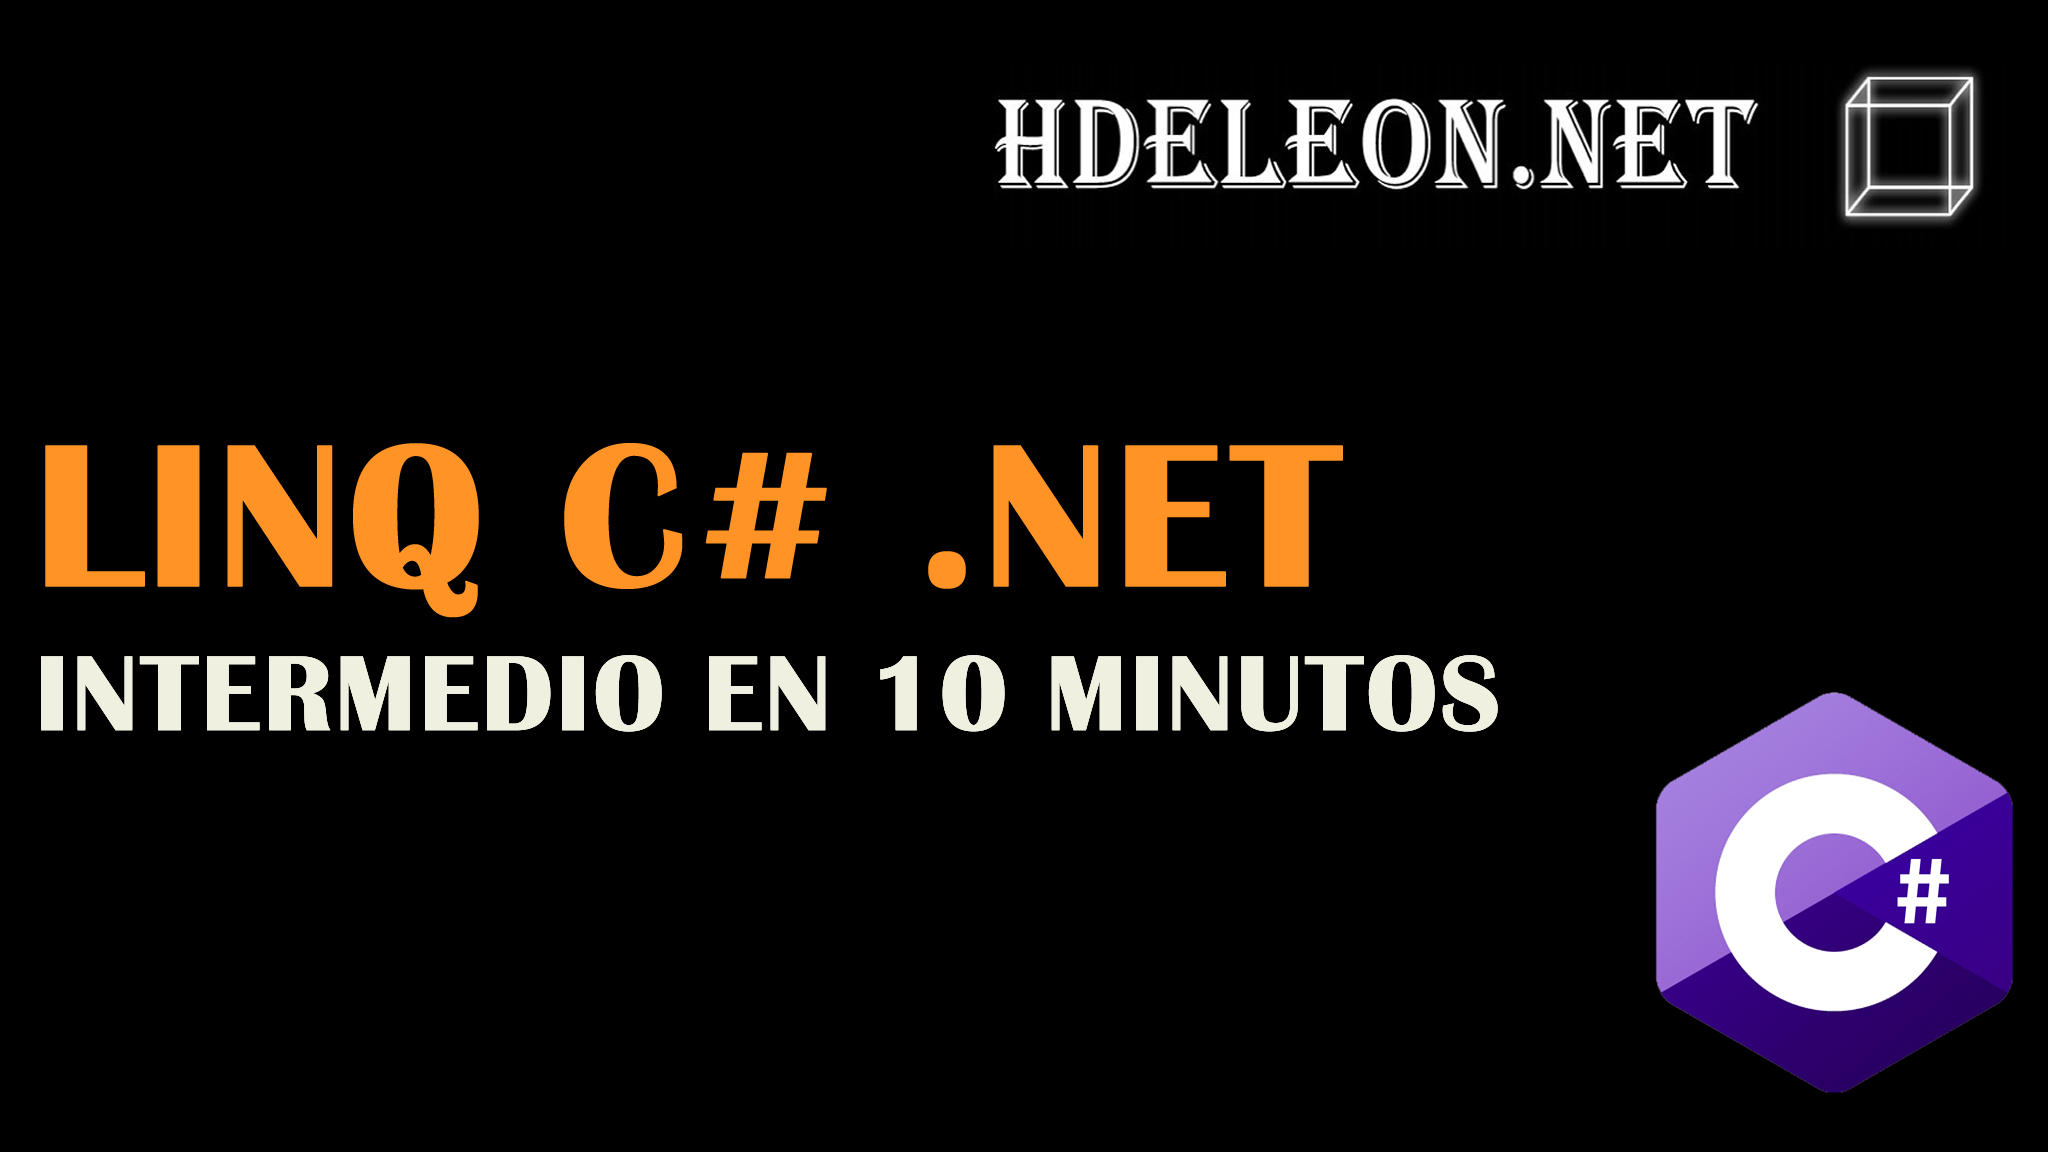 LINQ en C# .Net intermedio en 10 minutos, take, skip, select, union, count